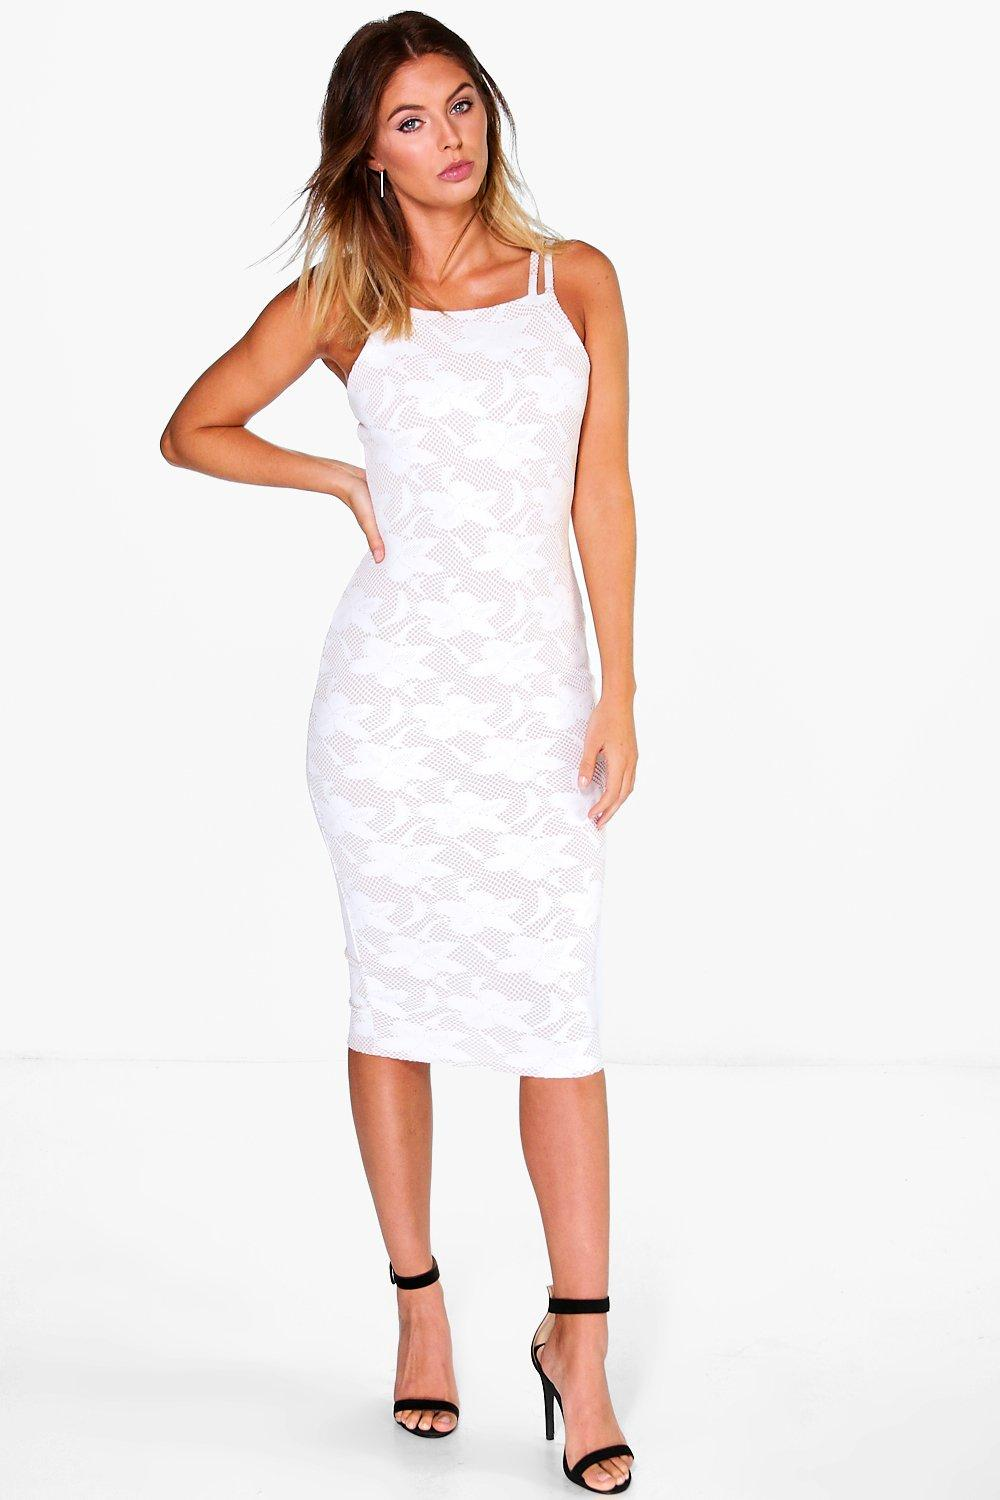 Lola Embossed Lace Midi Dress